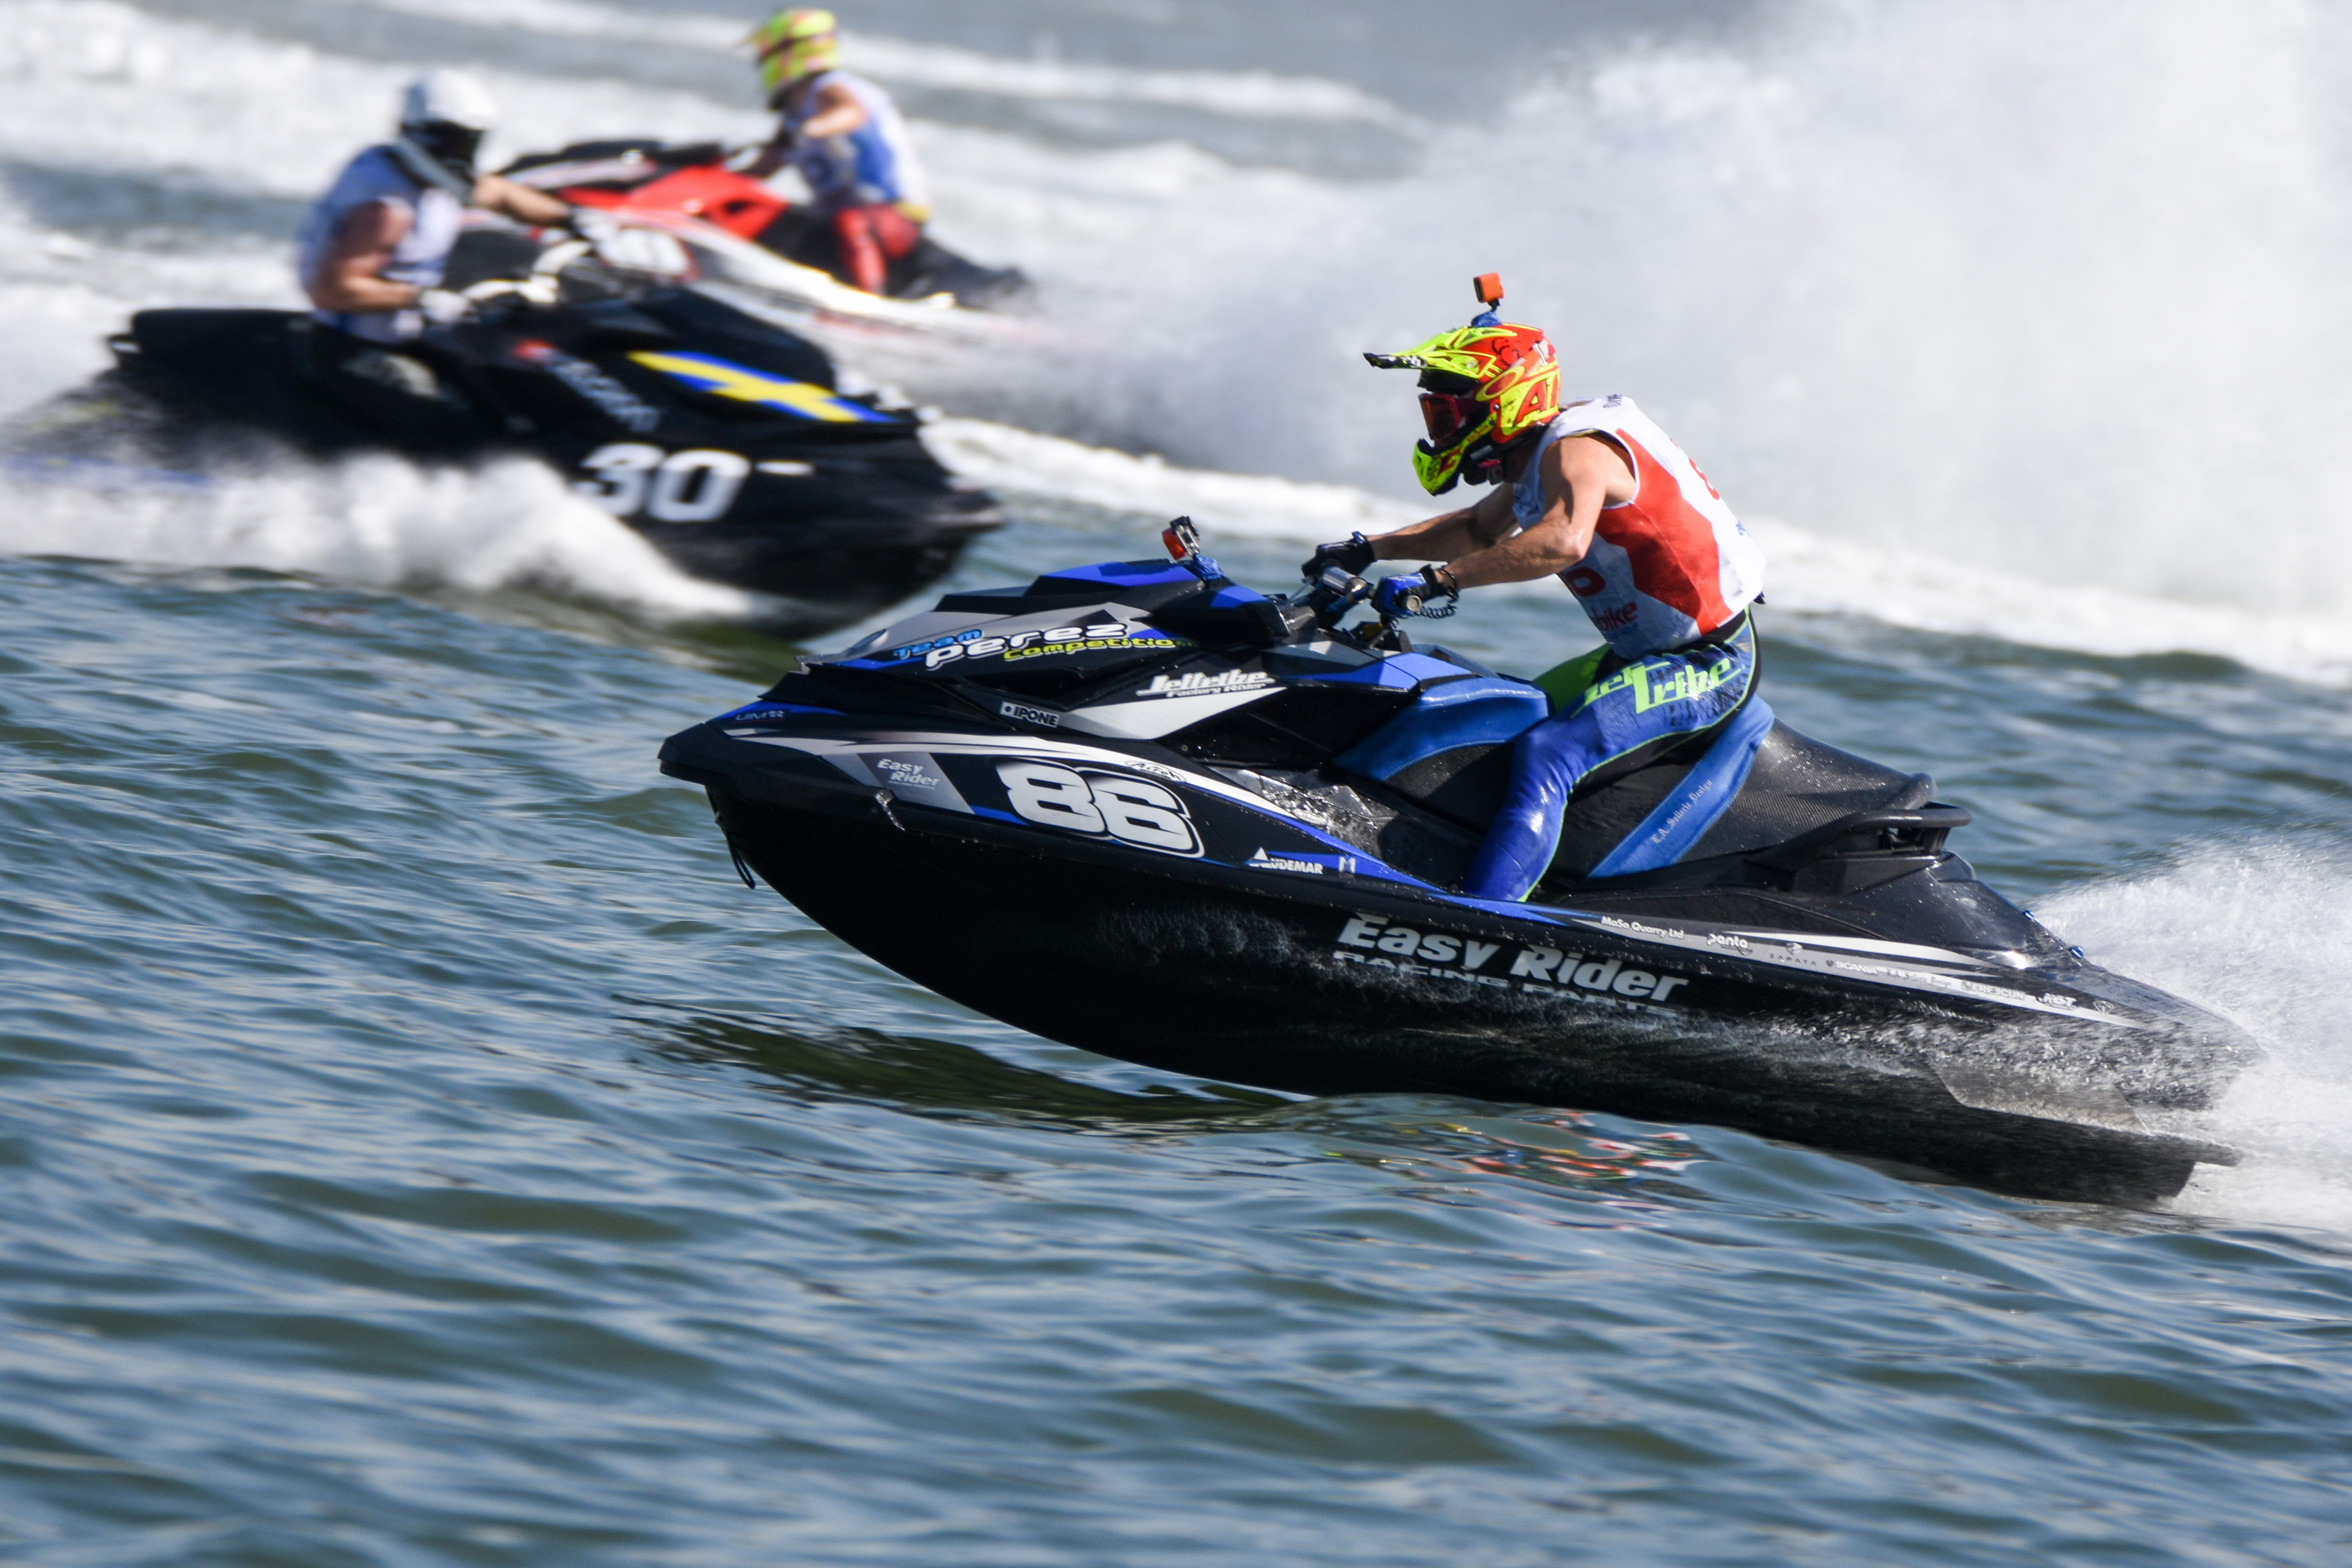 AQUABIKE PROMOTION ANNOUNCE SIX RACE CALENDAR